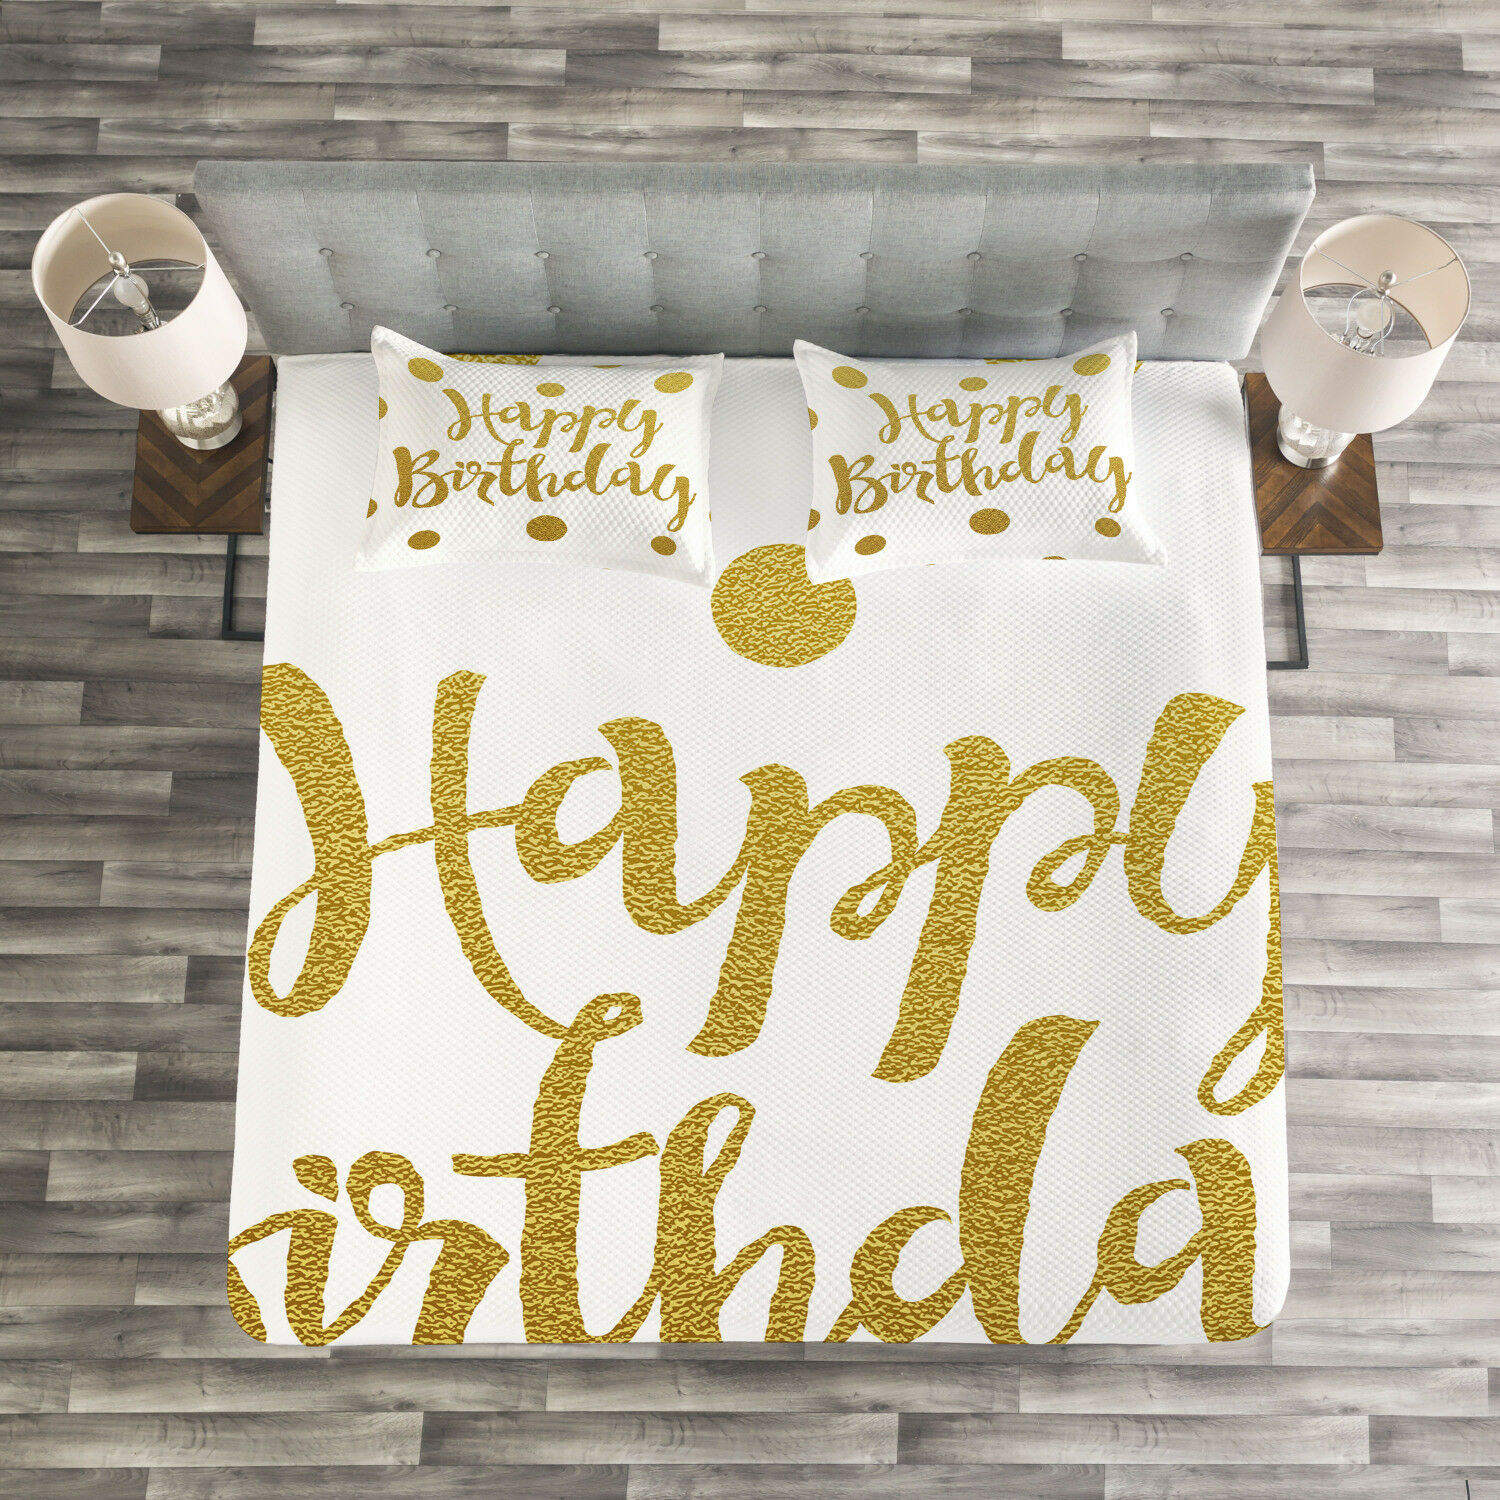 Birthday Quilted Bedspread & Pillow Shams Set, Hand Writing Greeting Print